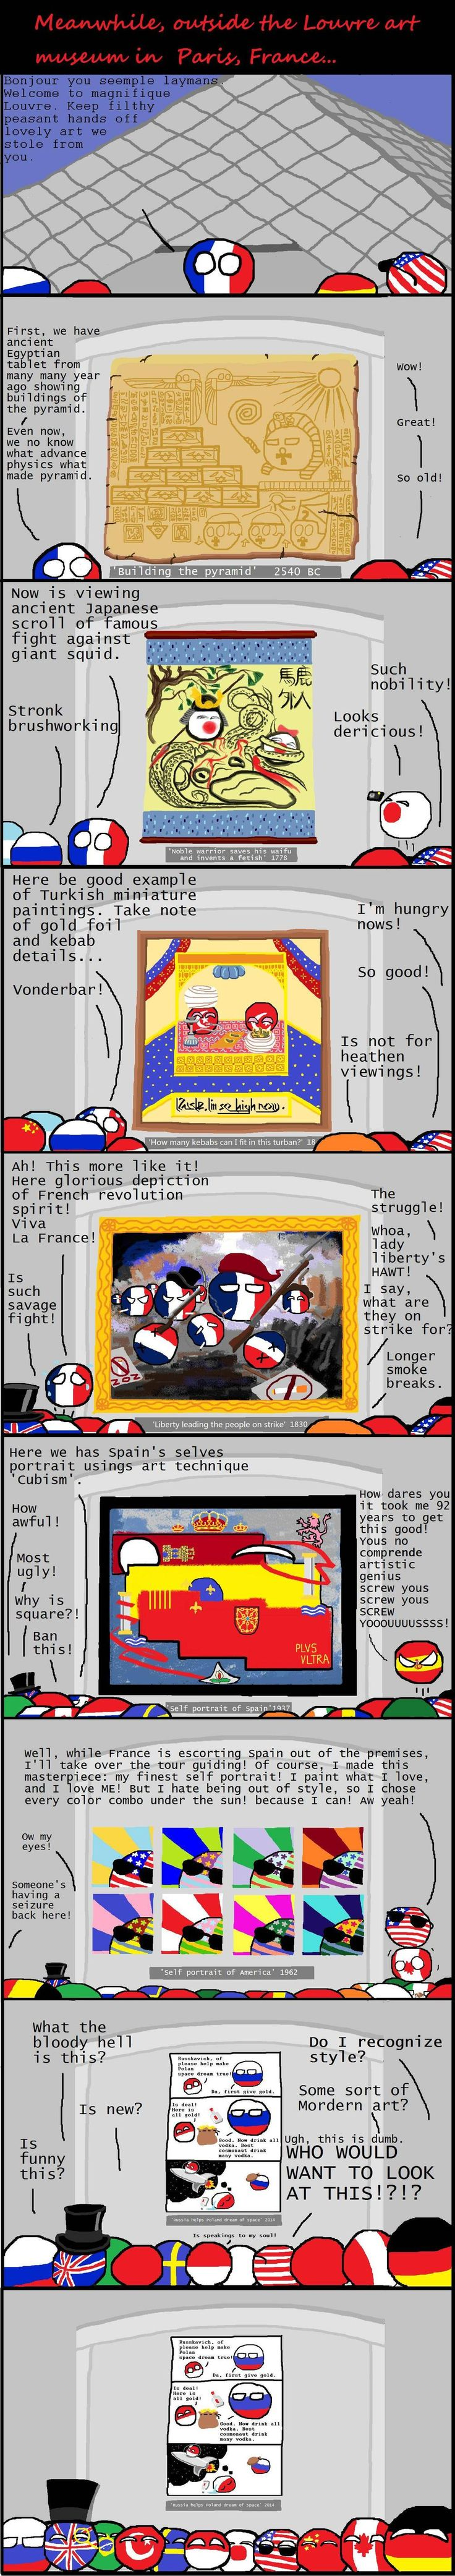 Art Tripping With France Weve Been Fourth Walled By Polanball